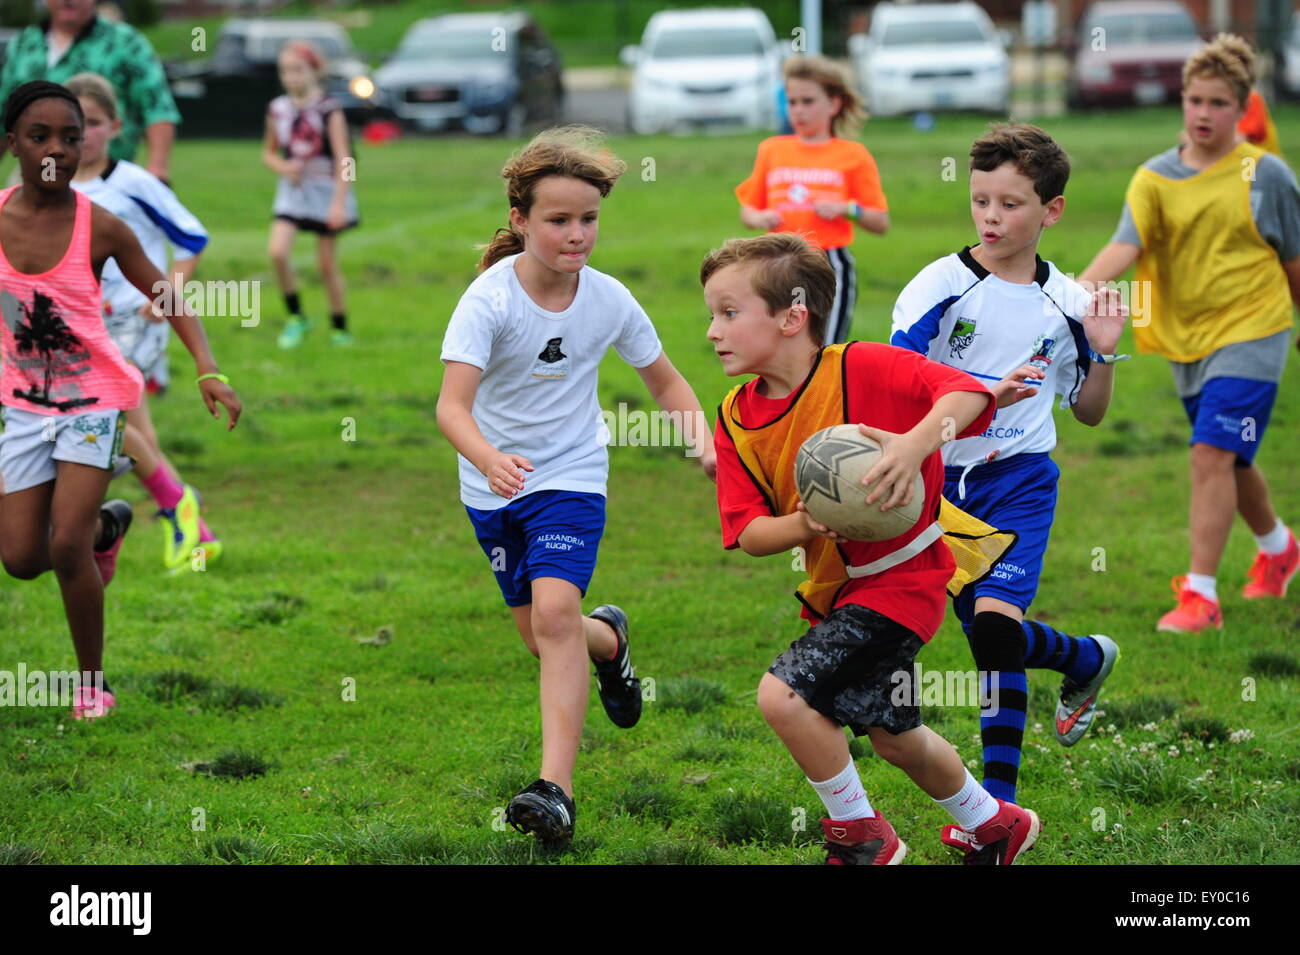 sports-youth-rugby-played-in-the-usa-in-